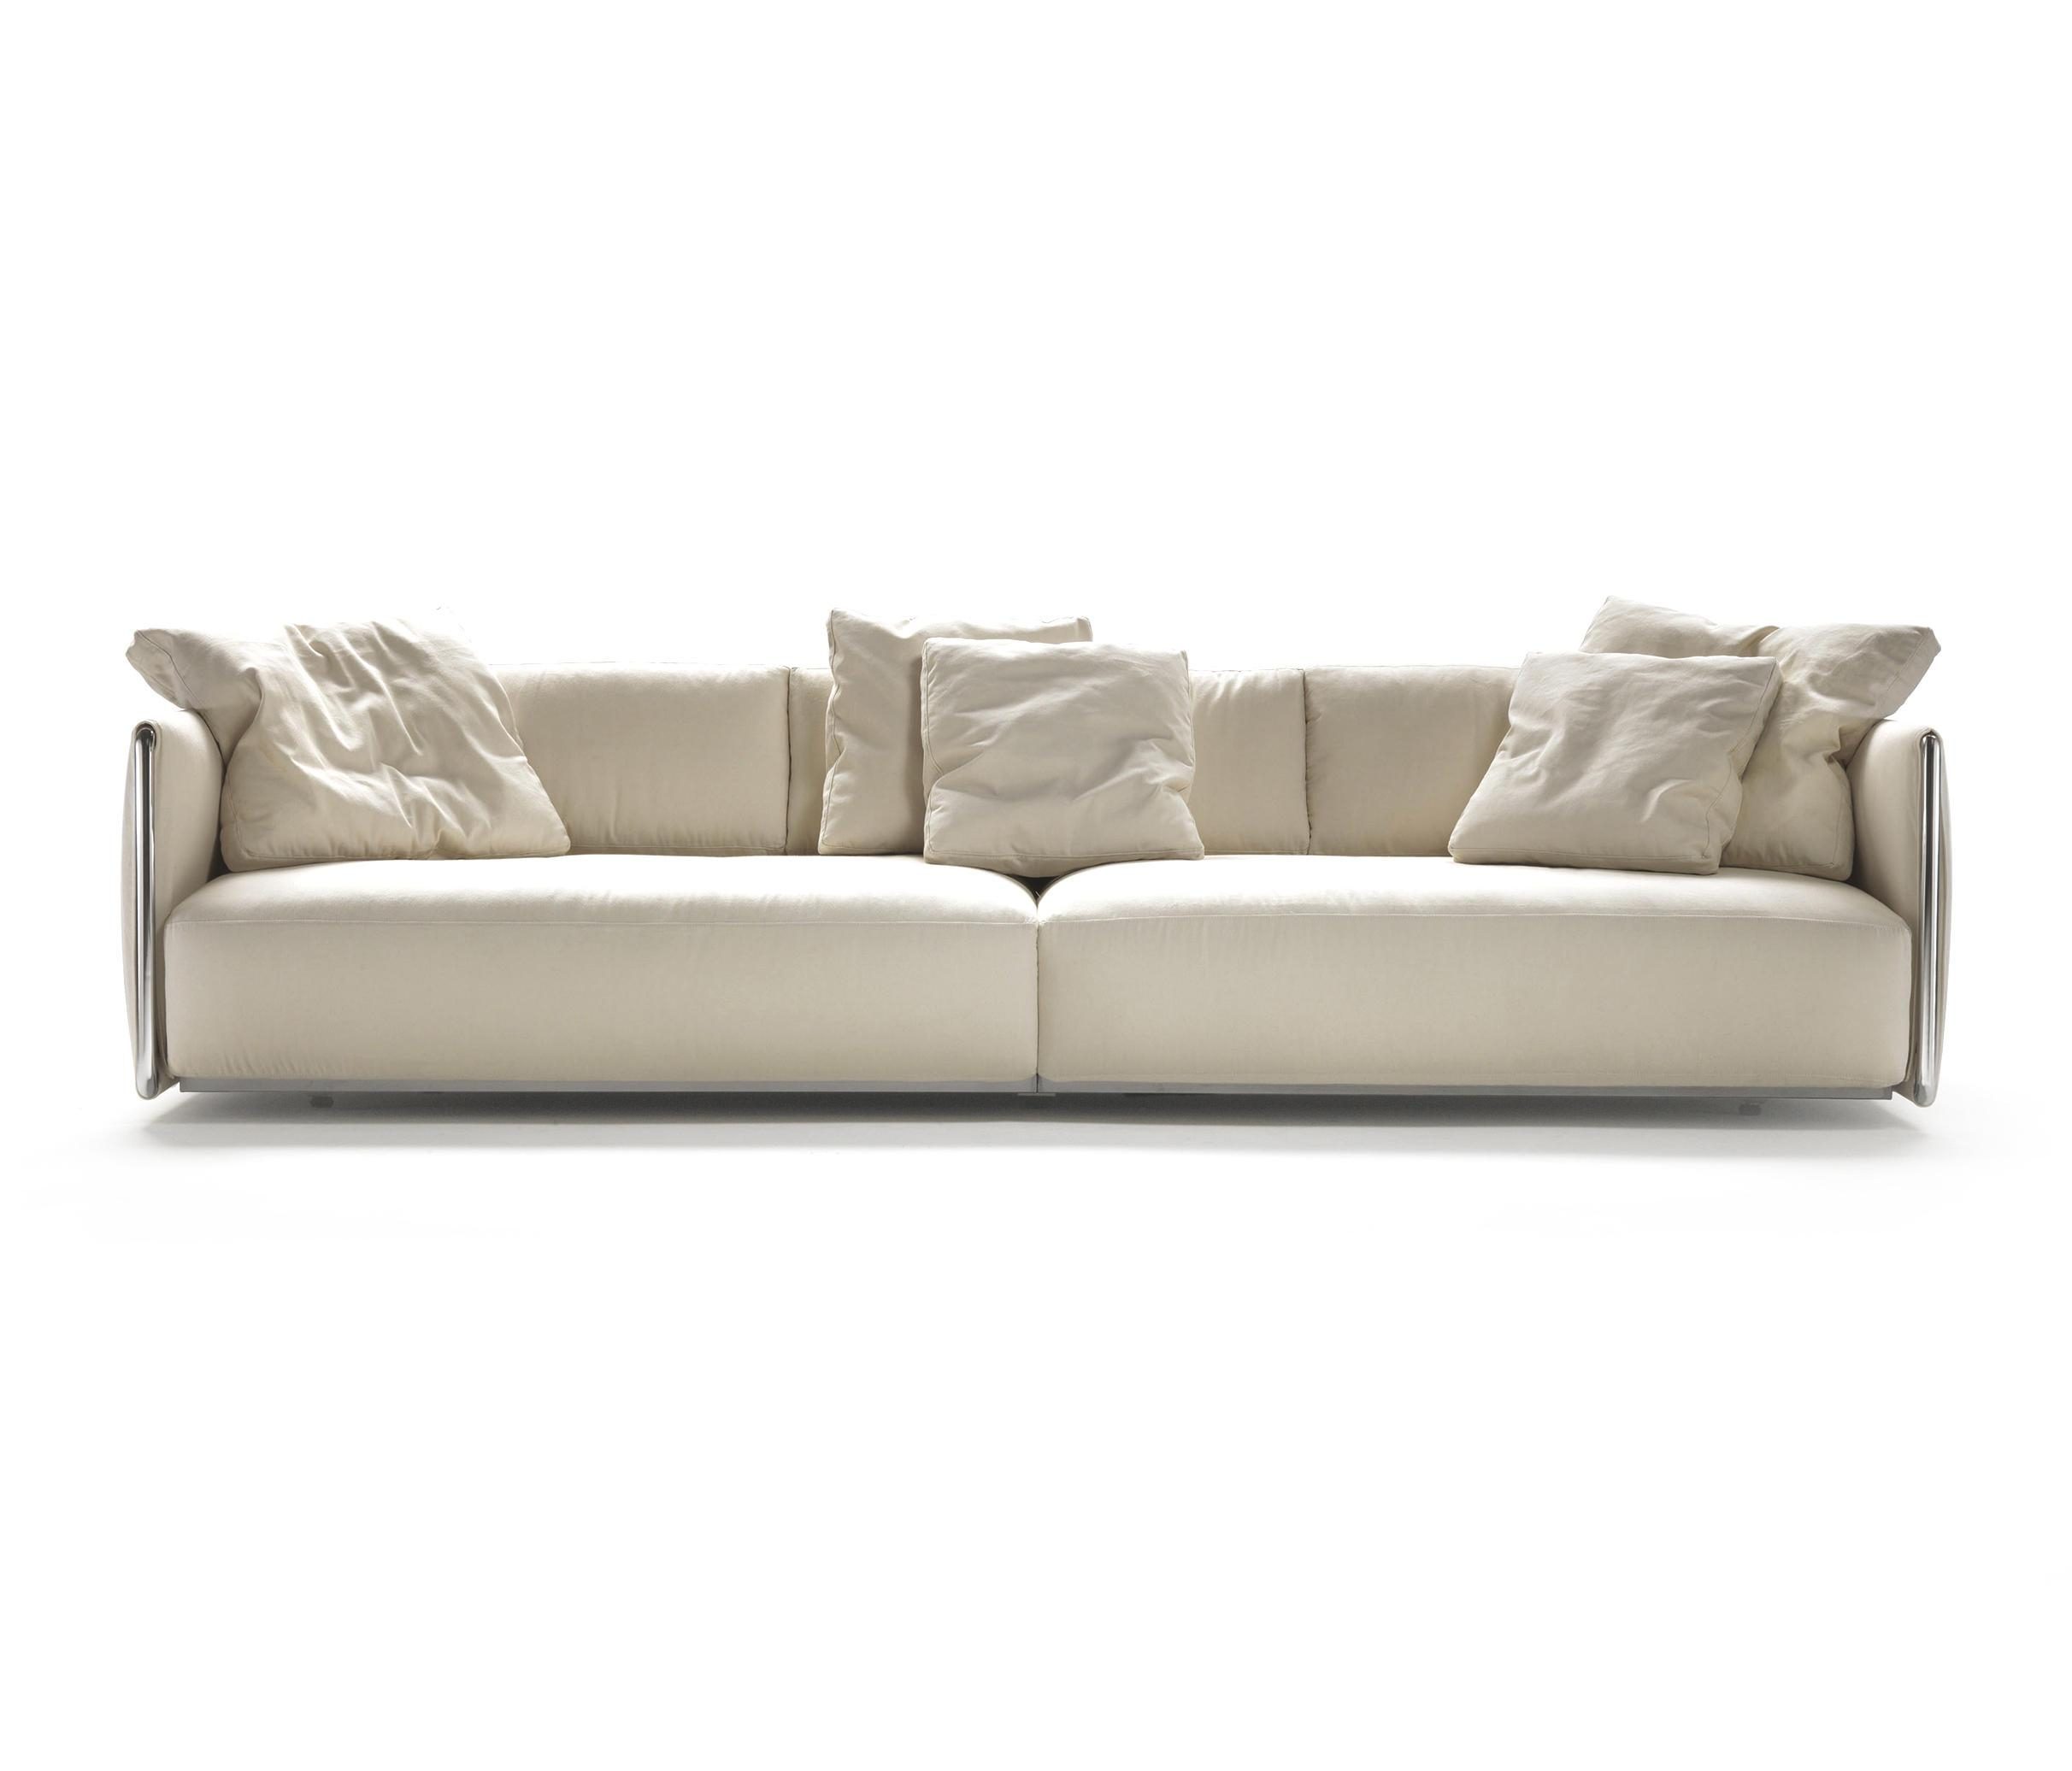 Edmond Sofa – Lounge Sofas From Flexform | Architonic Intended For Flexform Sofas (View 13 of 20)